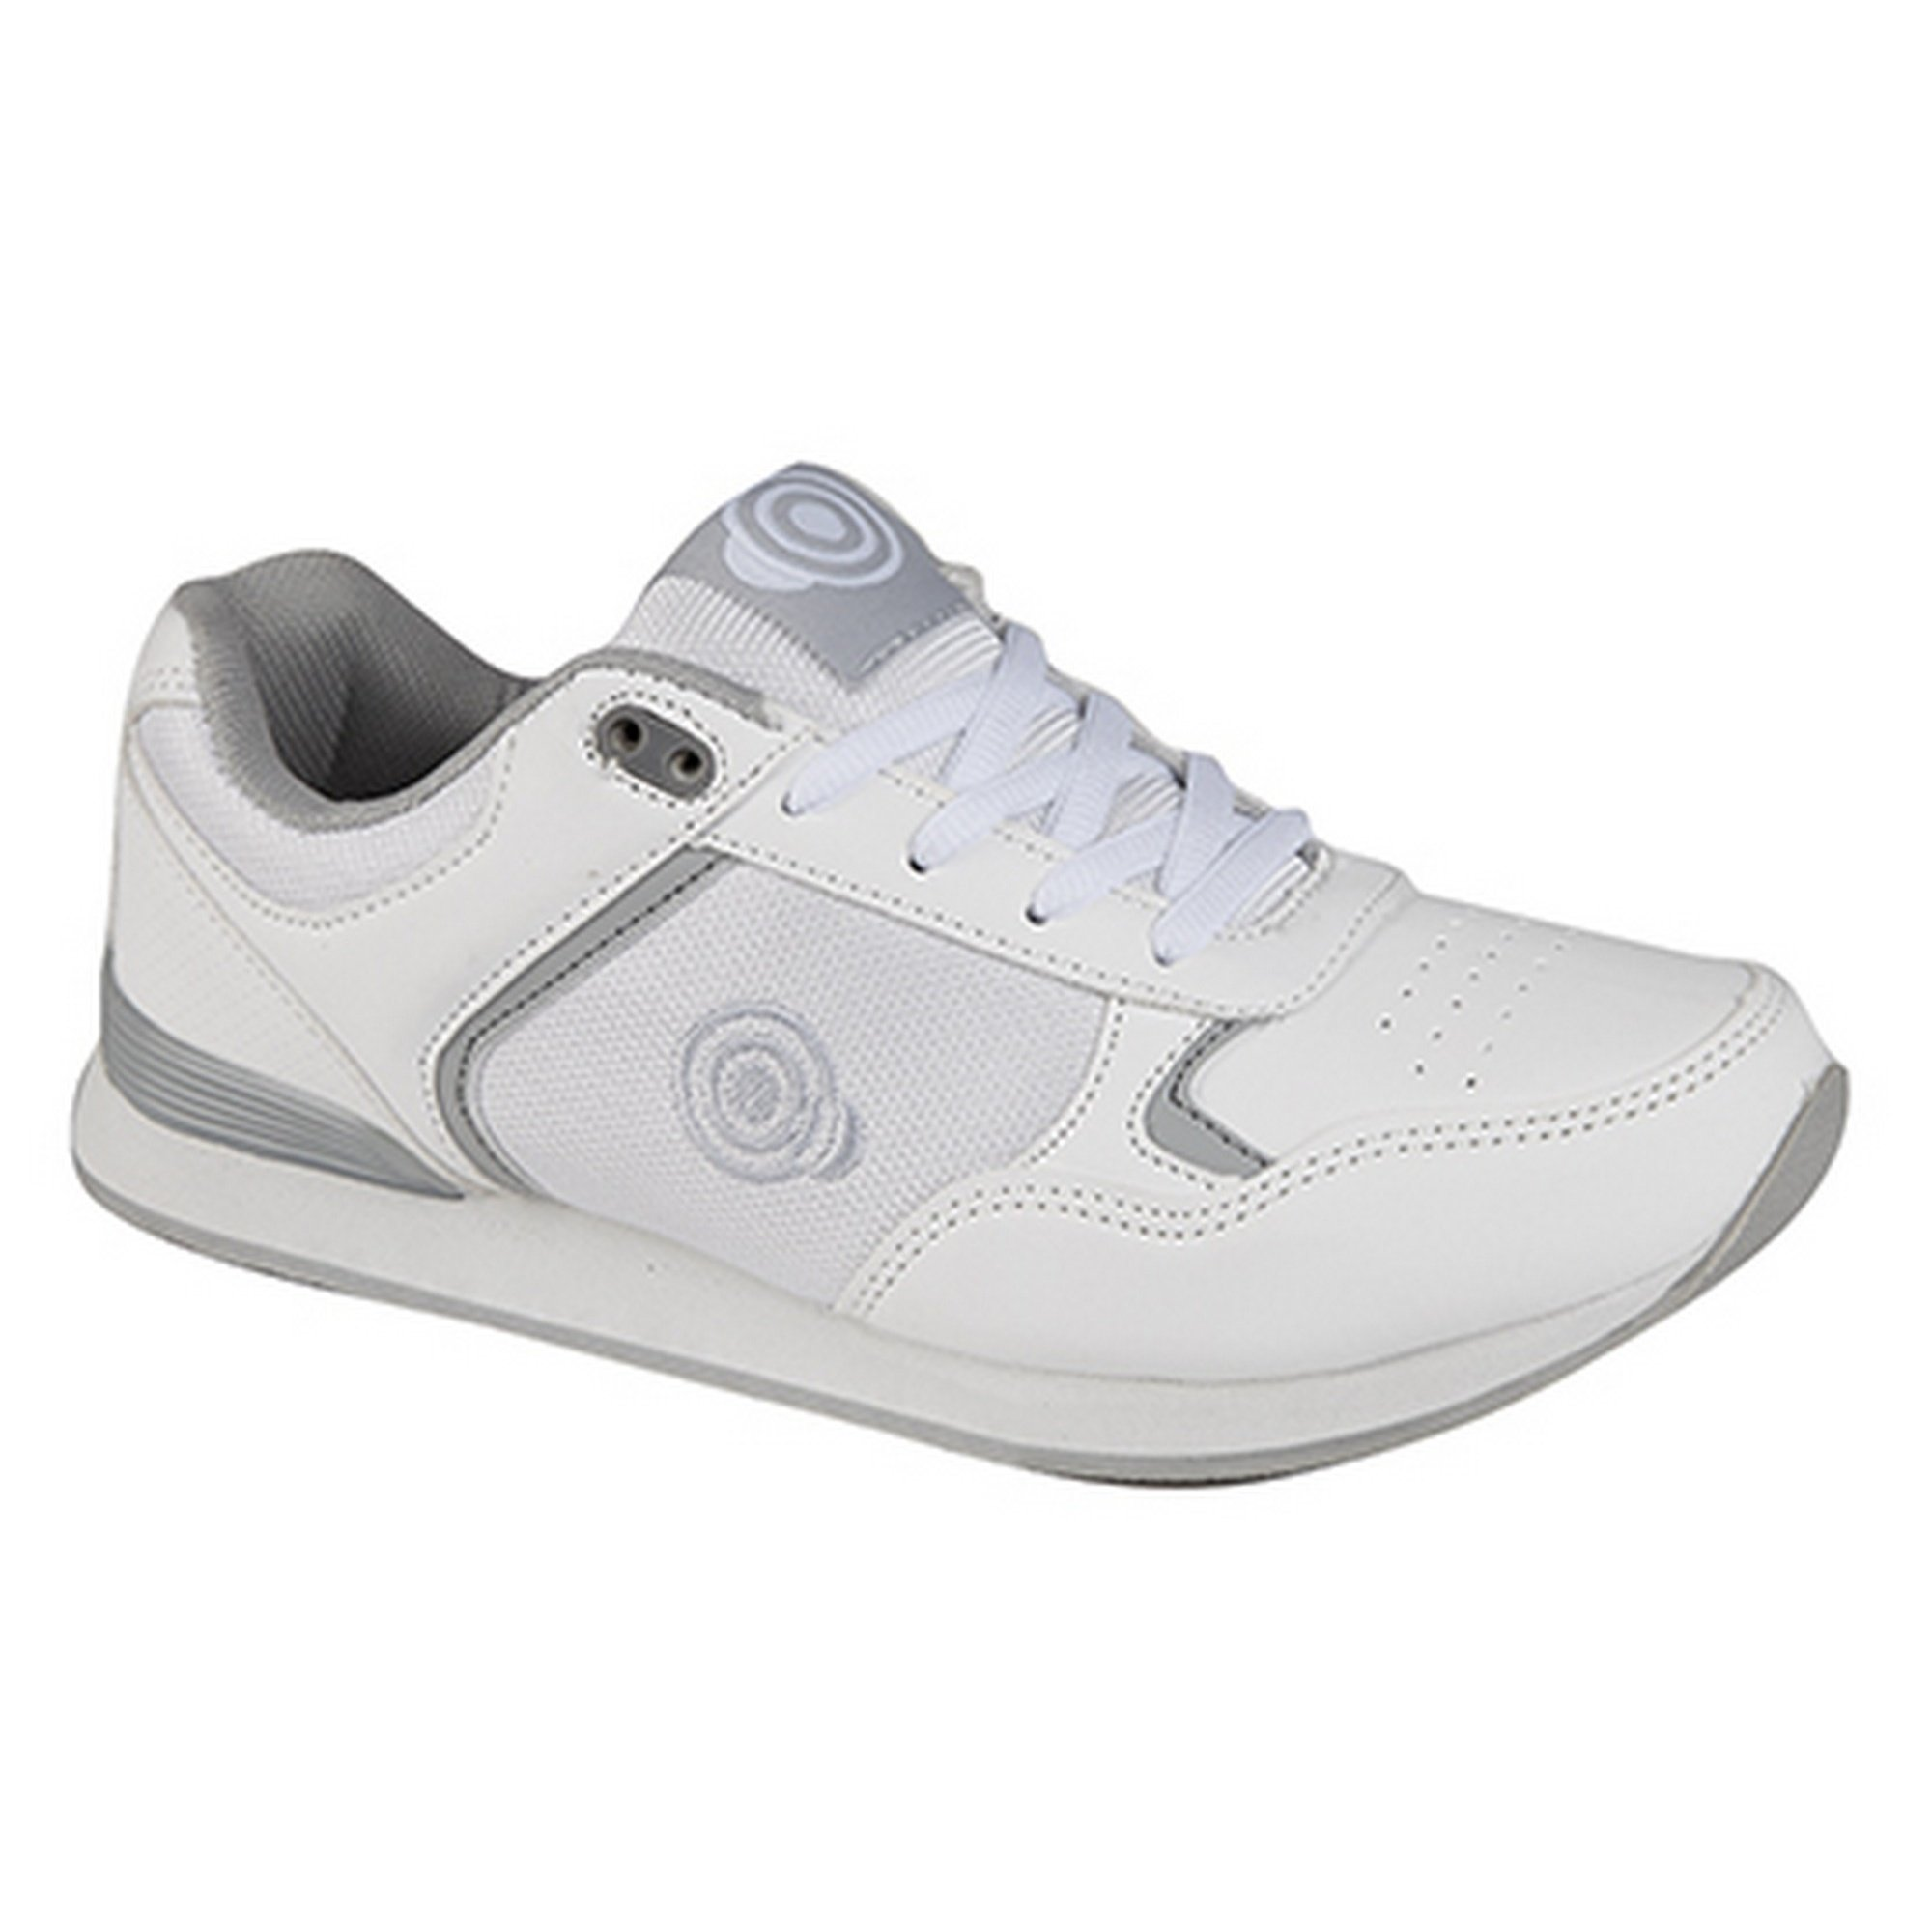 Dek Womens/Ladies Kitty Lace up Trainer-Style Bowling Shoes (6 US) (White)